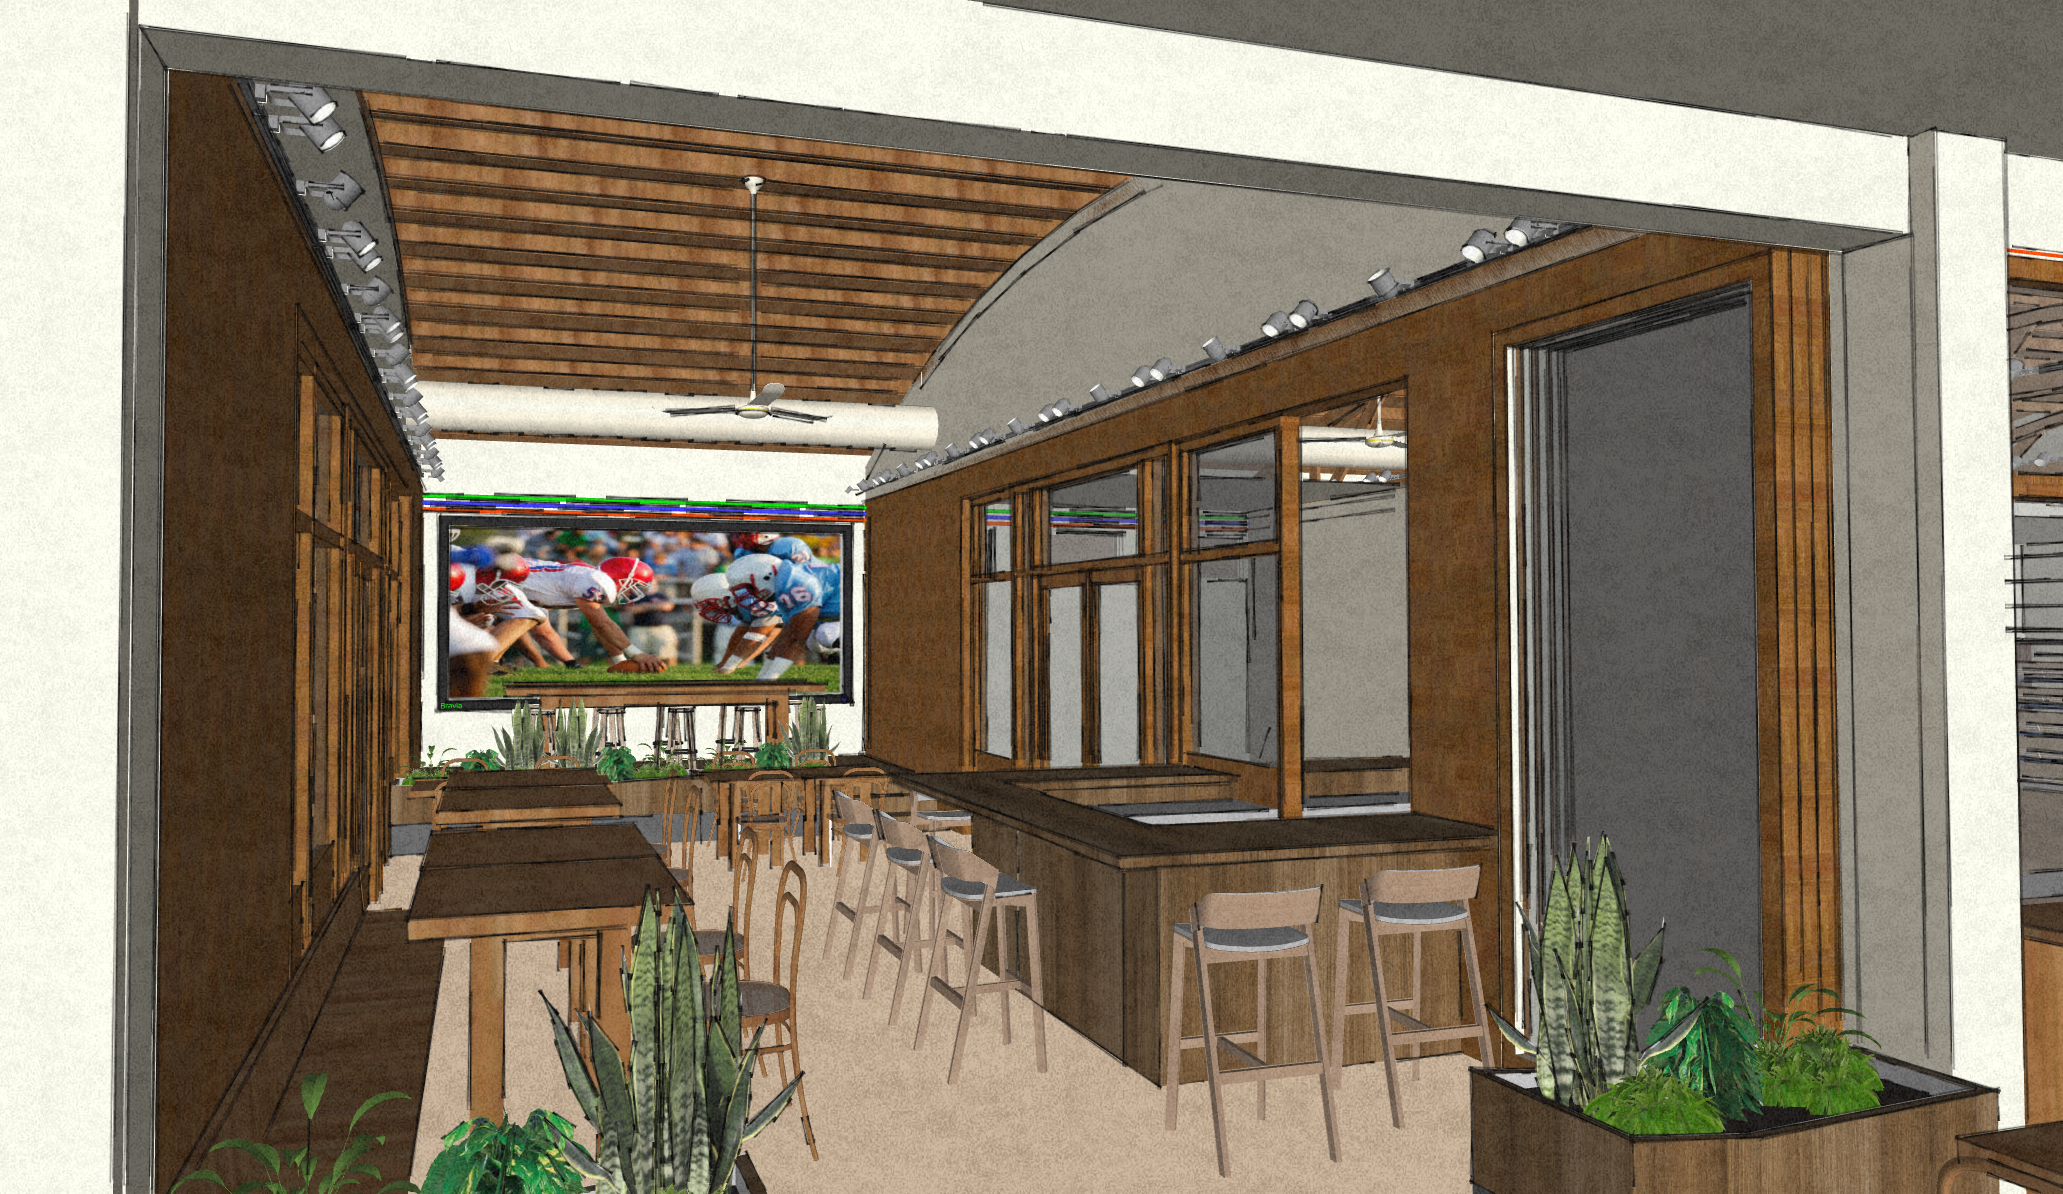 Conceptual interior image of Phase 1 of Historic Food City Building.  This image was created by Kelly & Morgan Architects for exclusive use by Grub LLC. All Rights Reserved.